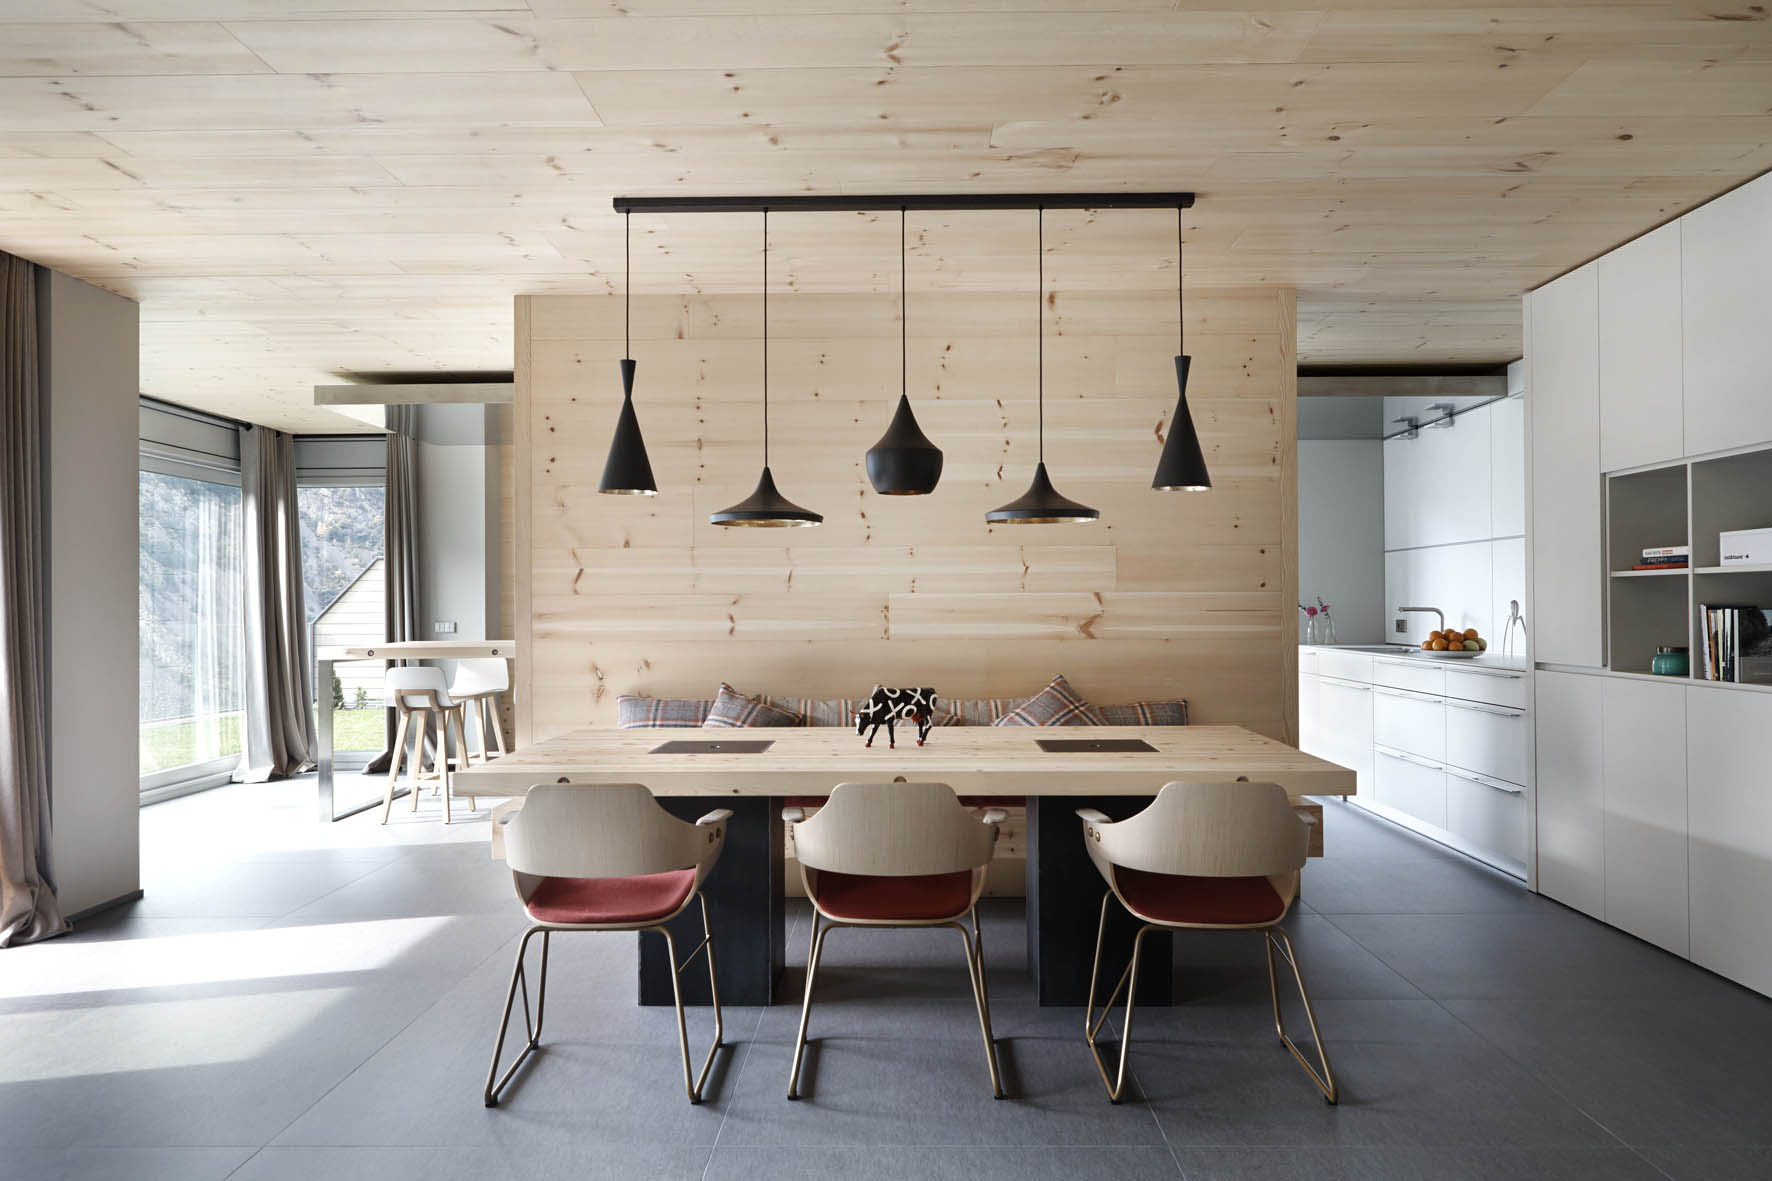 ideas for inner architecture with wooden elements